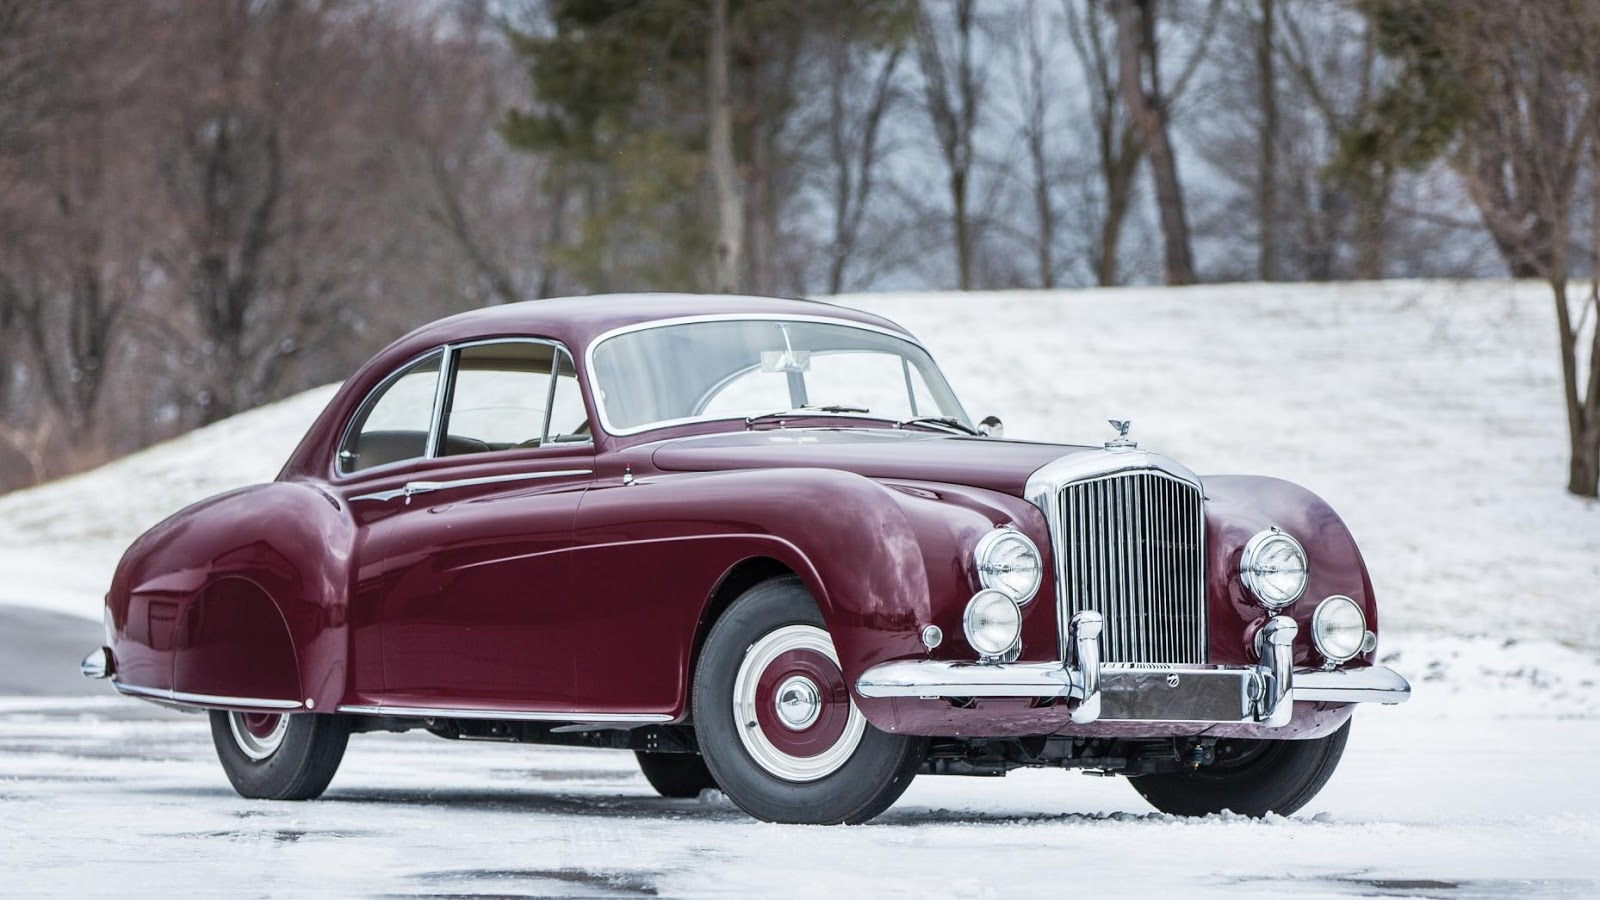 1954 Bentley R-Type Continental Fastback Sports Saloon: $1,815,000